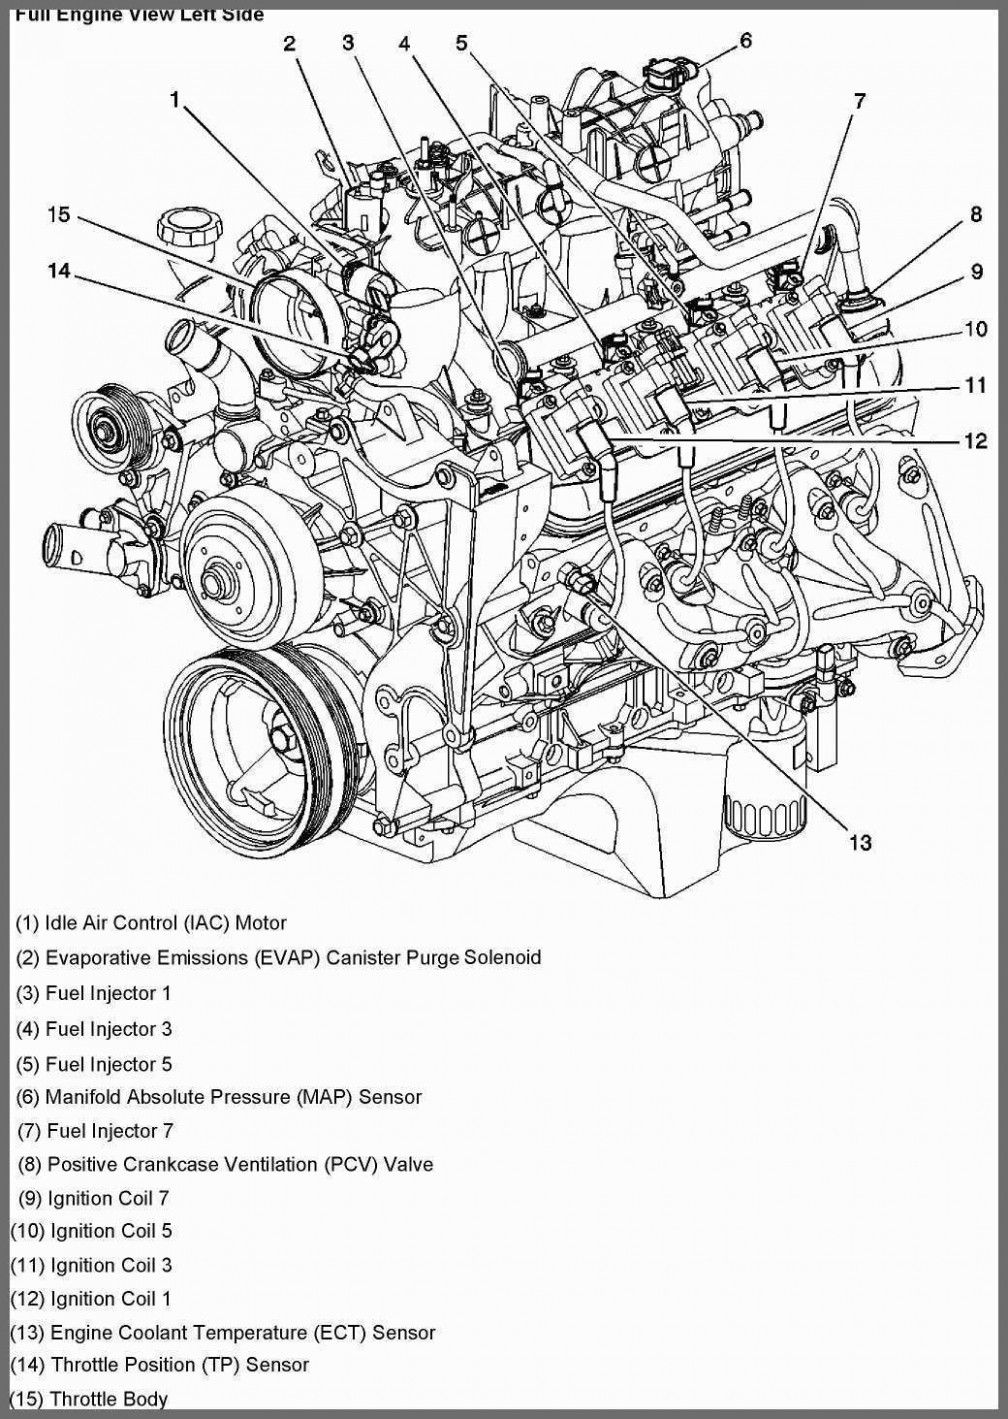 7 7 Vortec Engine Diagram Download Gratis In 2020 Chevy Trucks Truck Engine 1984 Chevy Truck